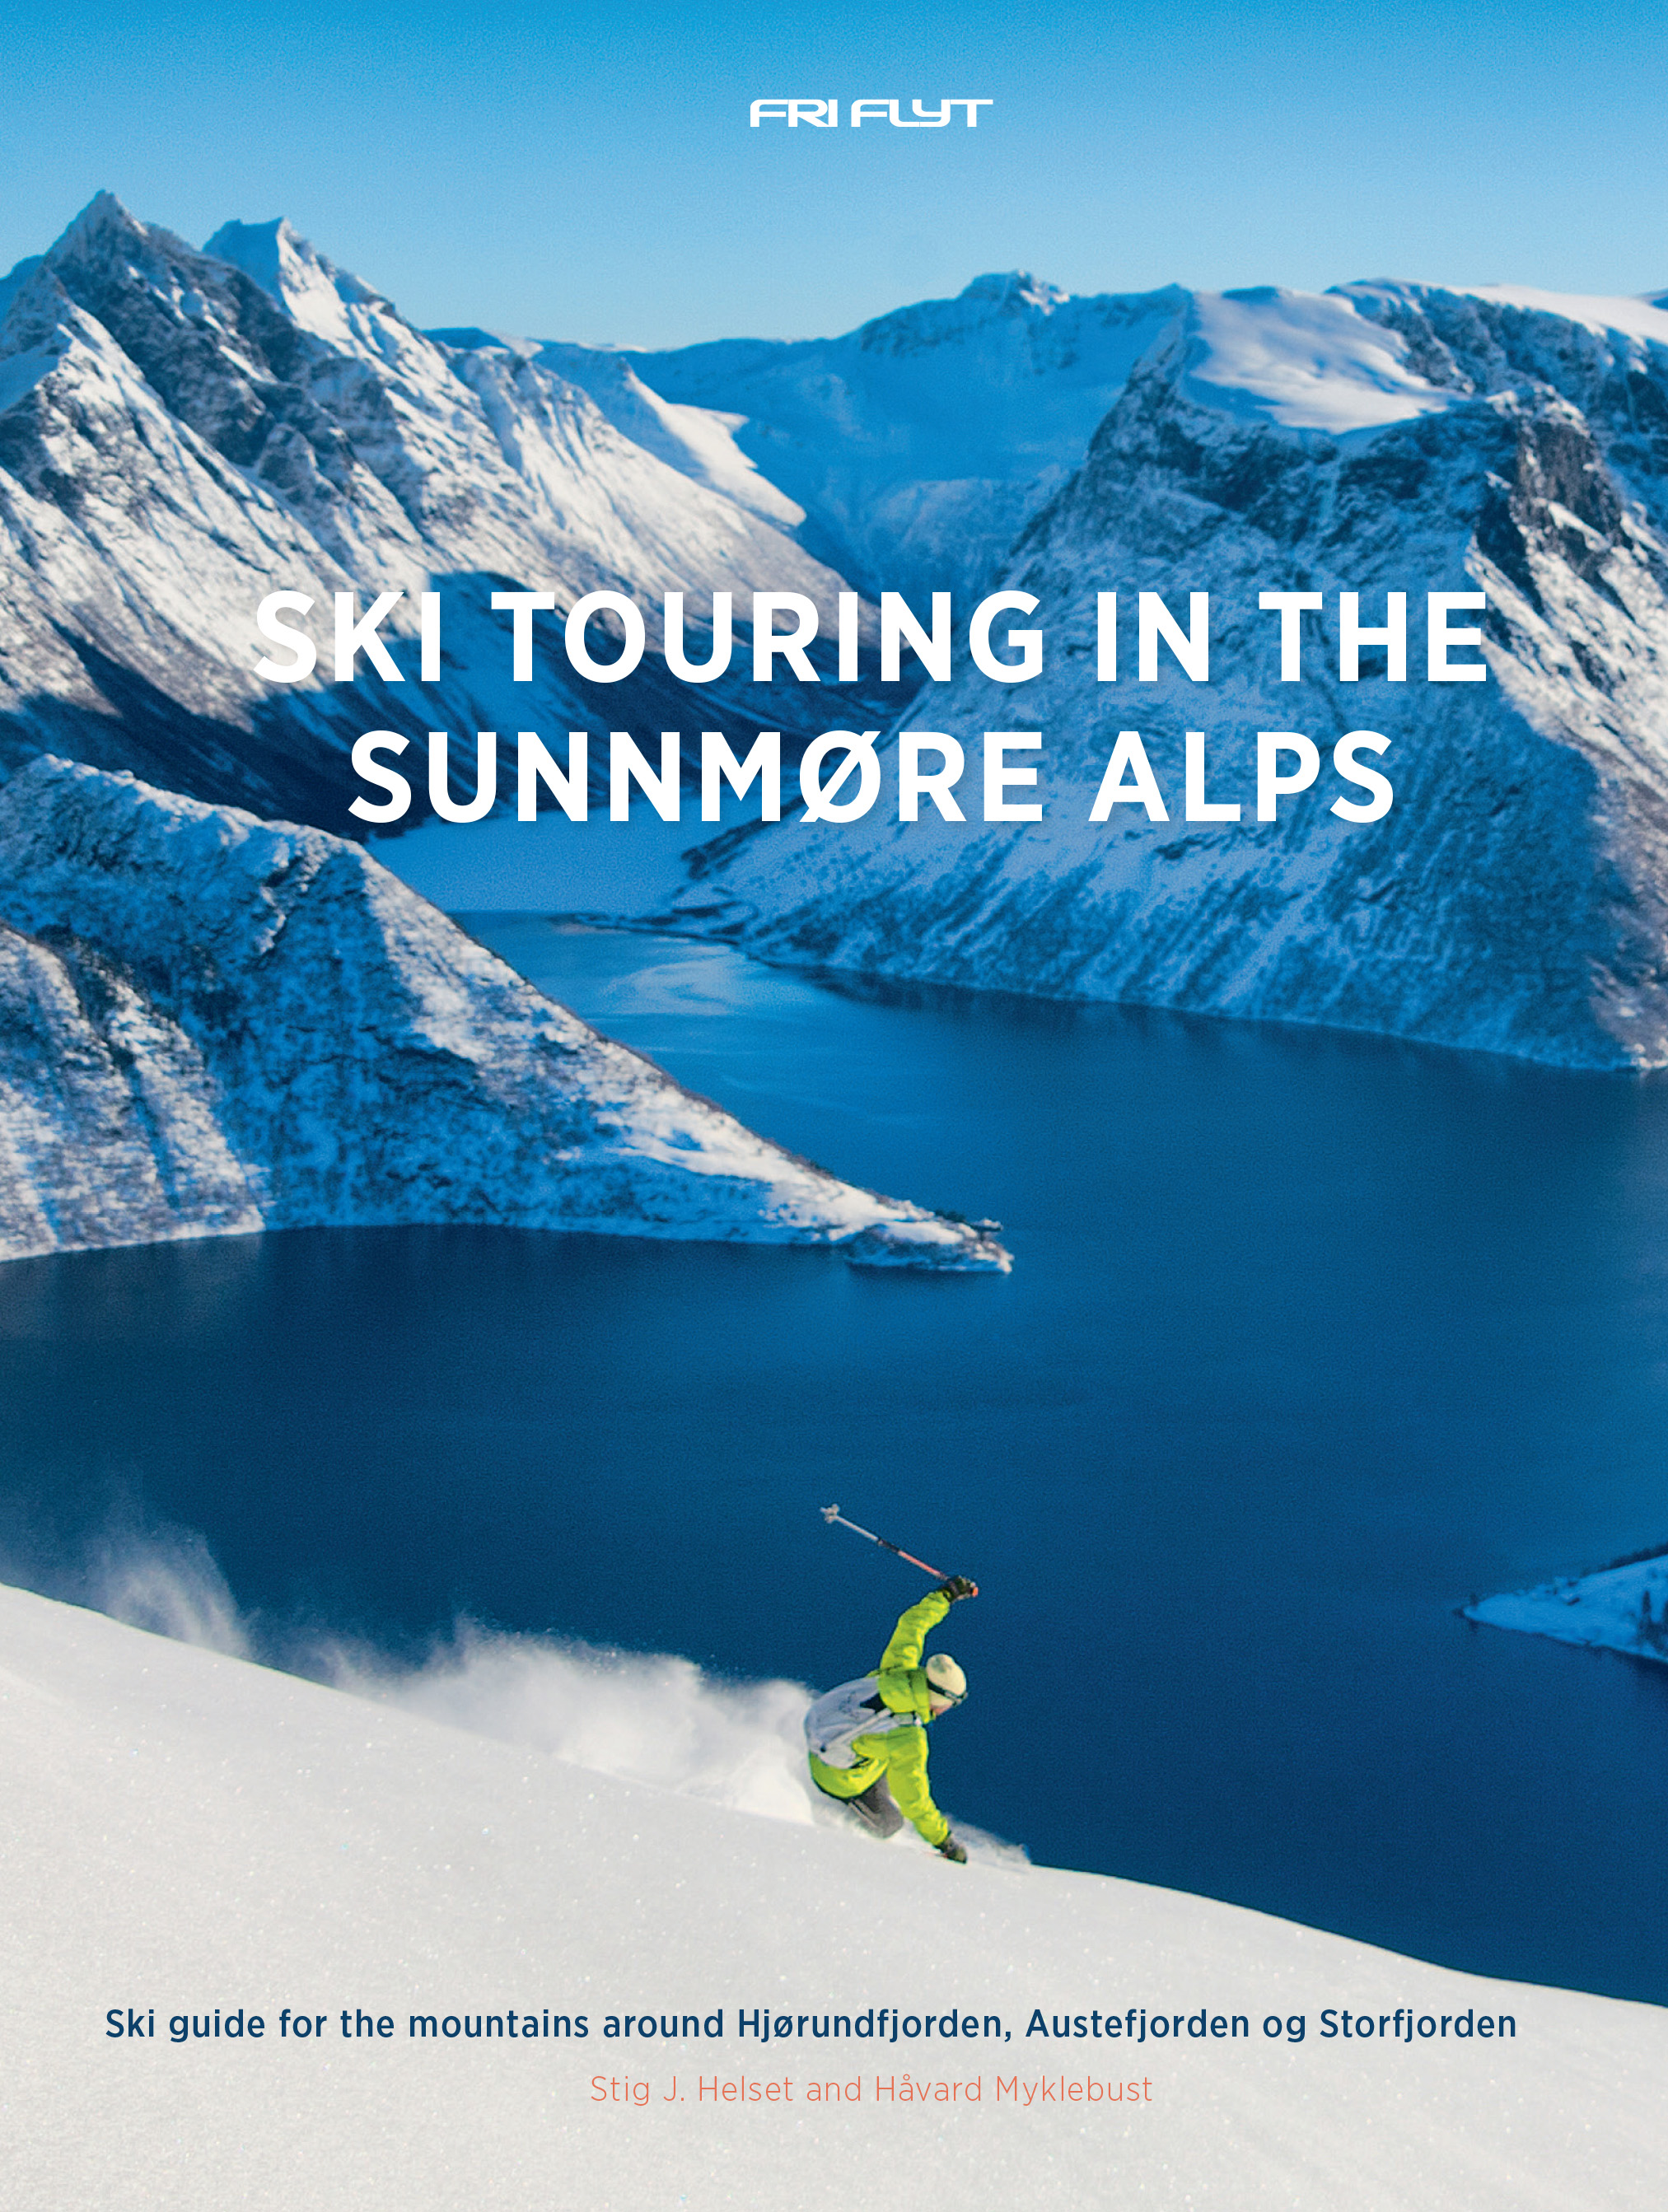 Ski touring in the Sunmore Alps